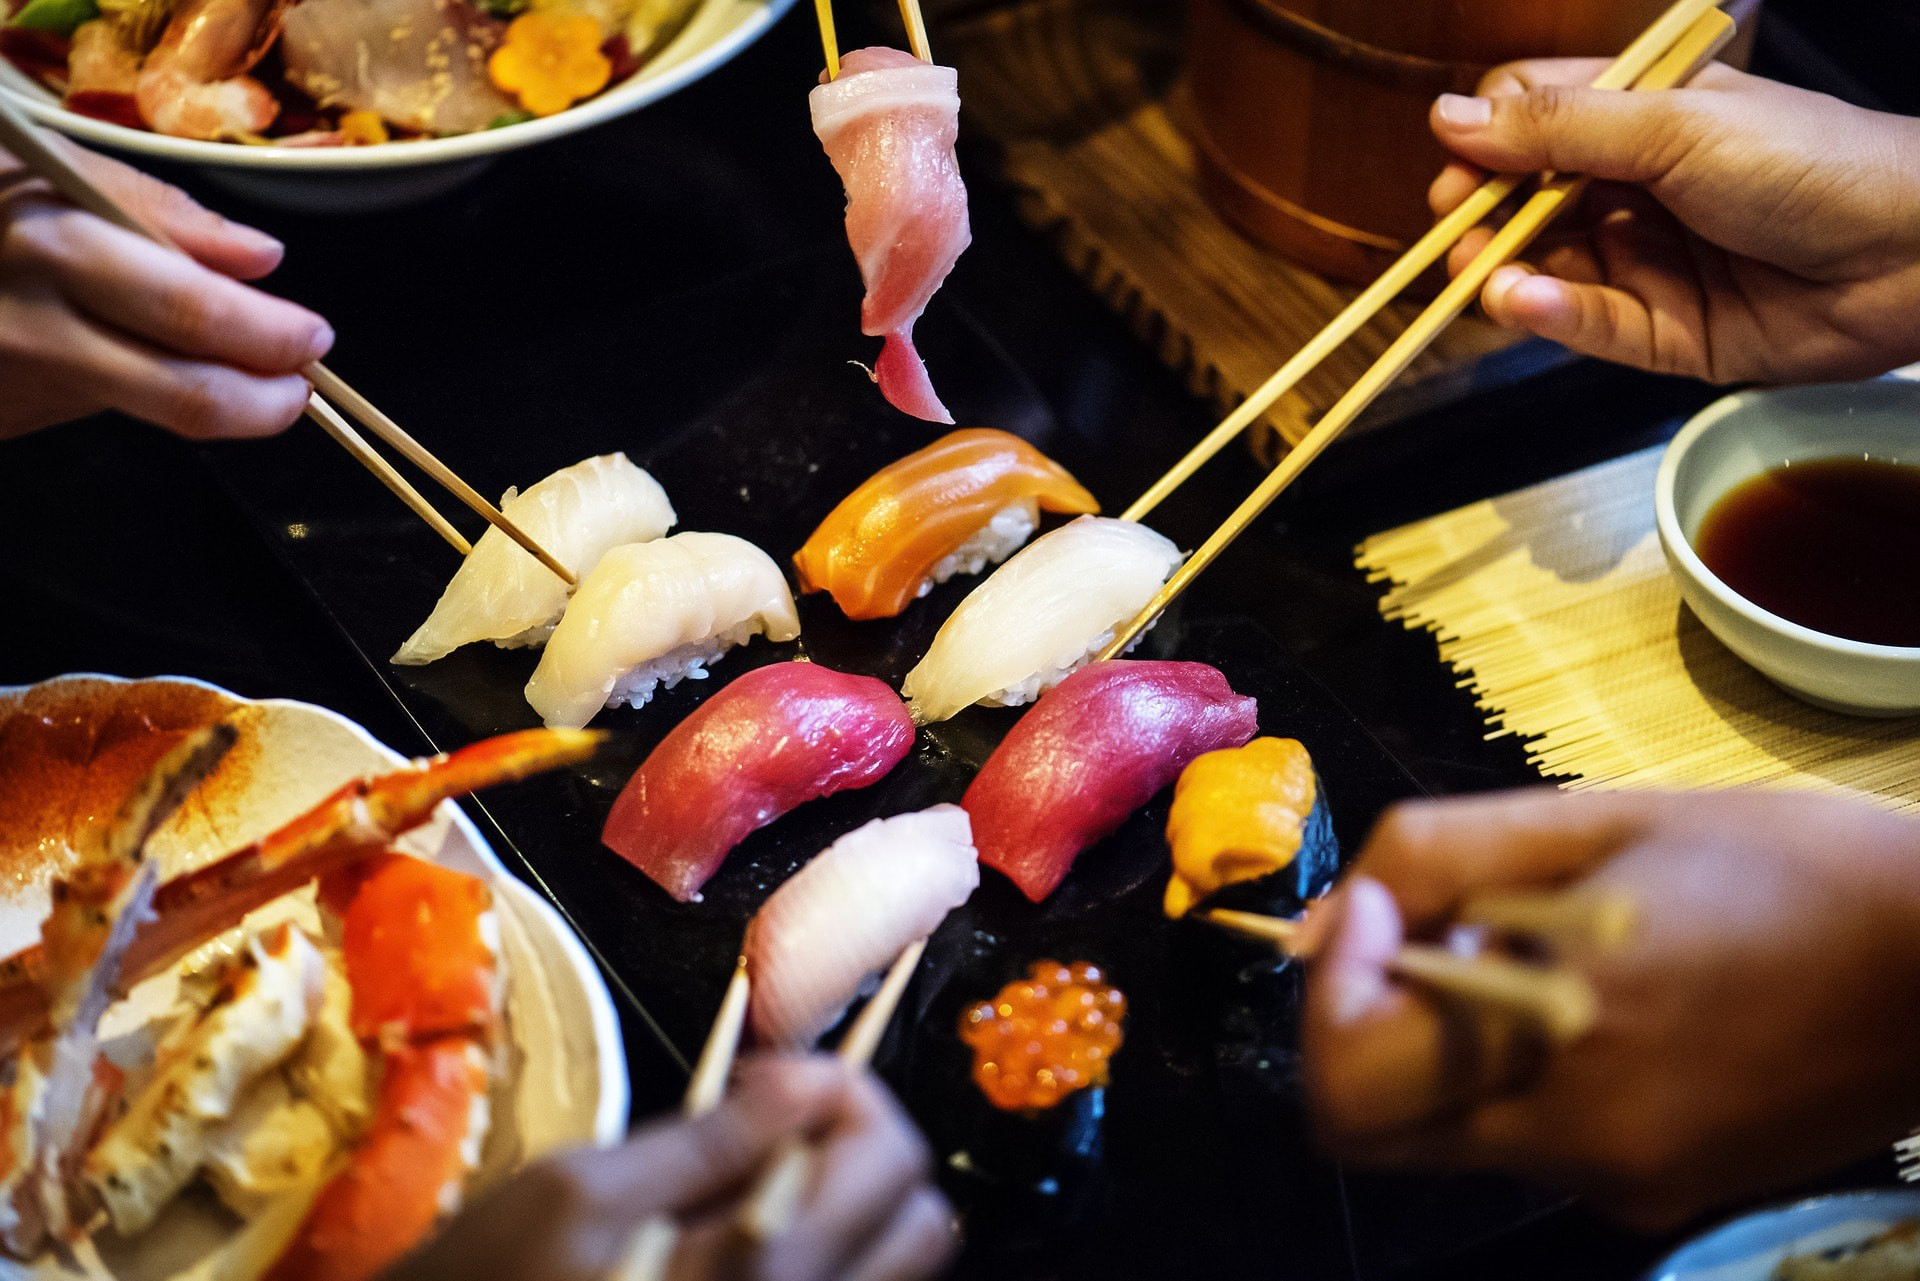 Enjoy food with friends.